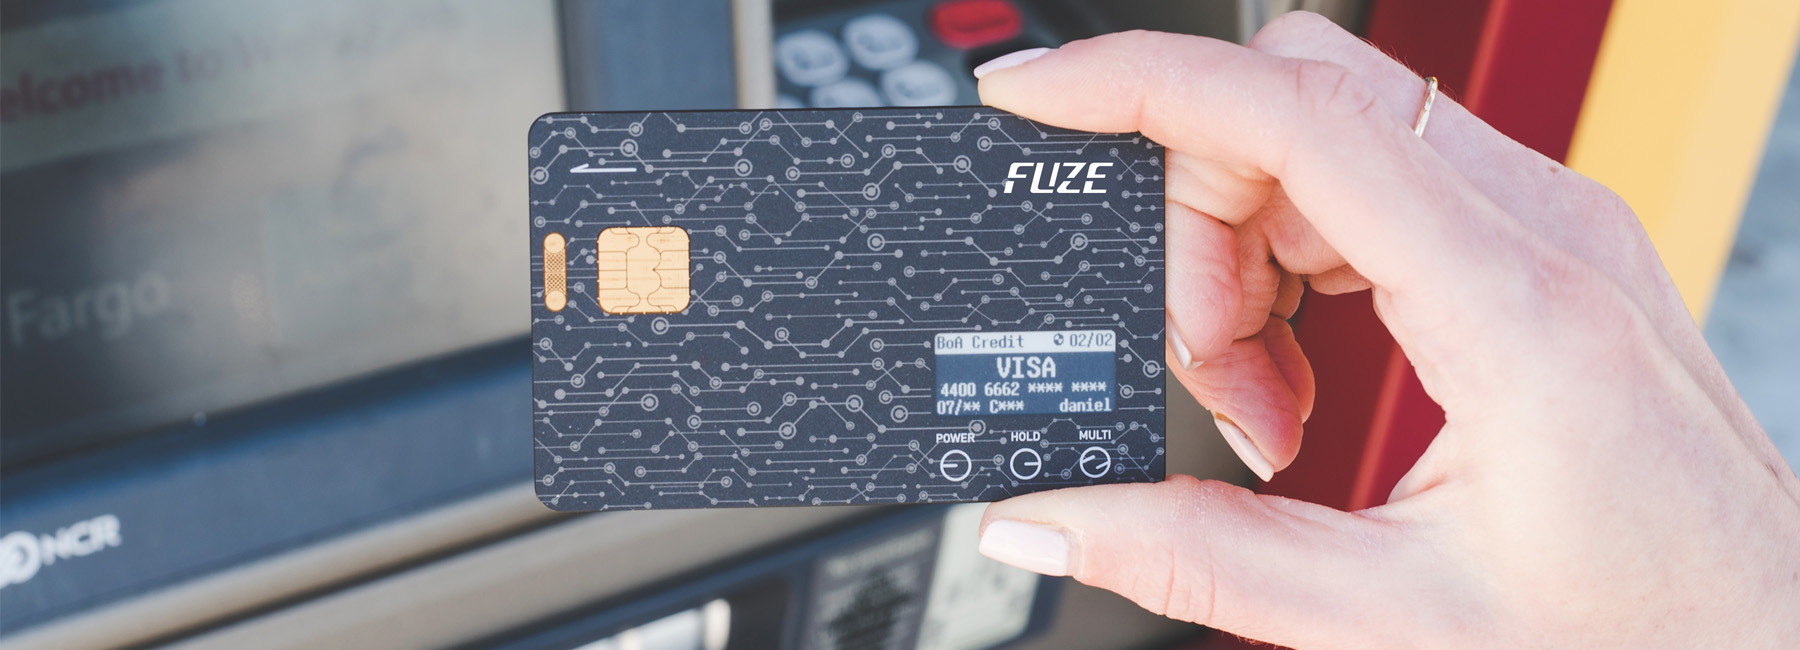 fuze-card-brilliantts-designboom-05-25-2017-fullheader